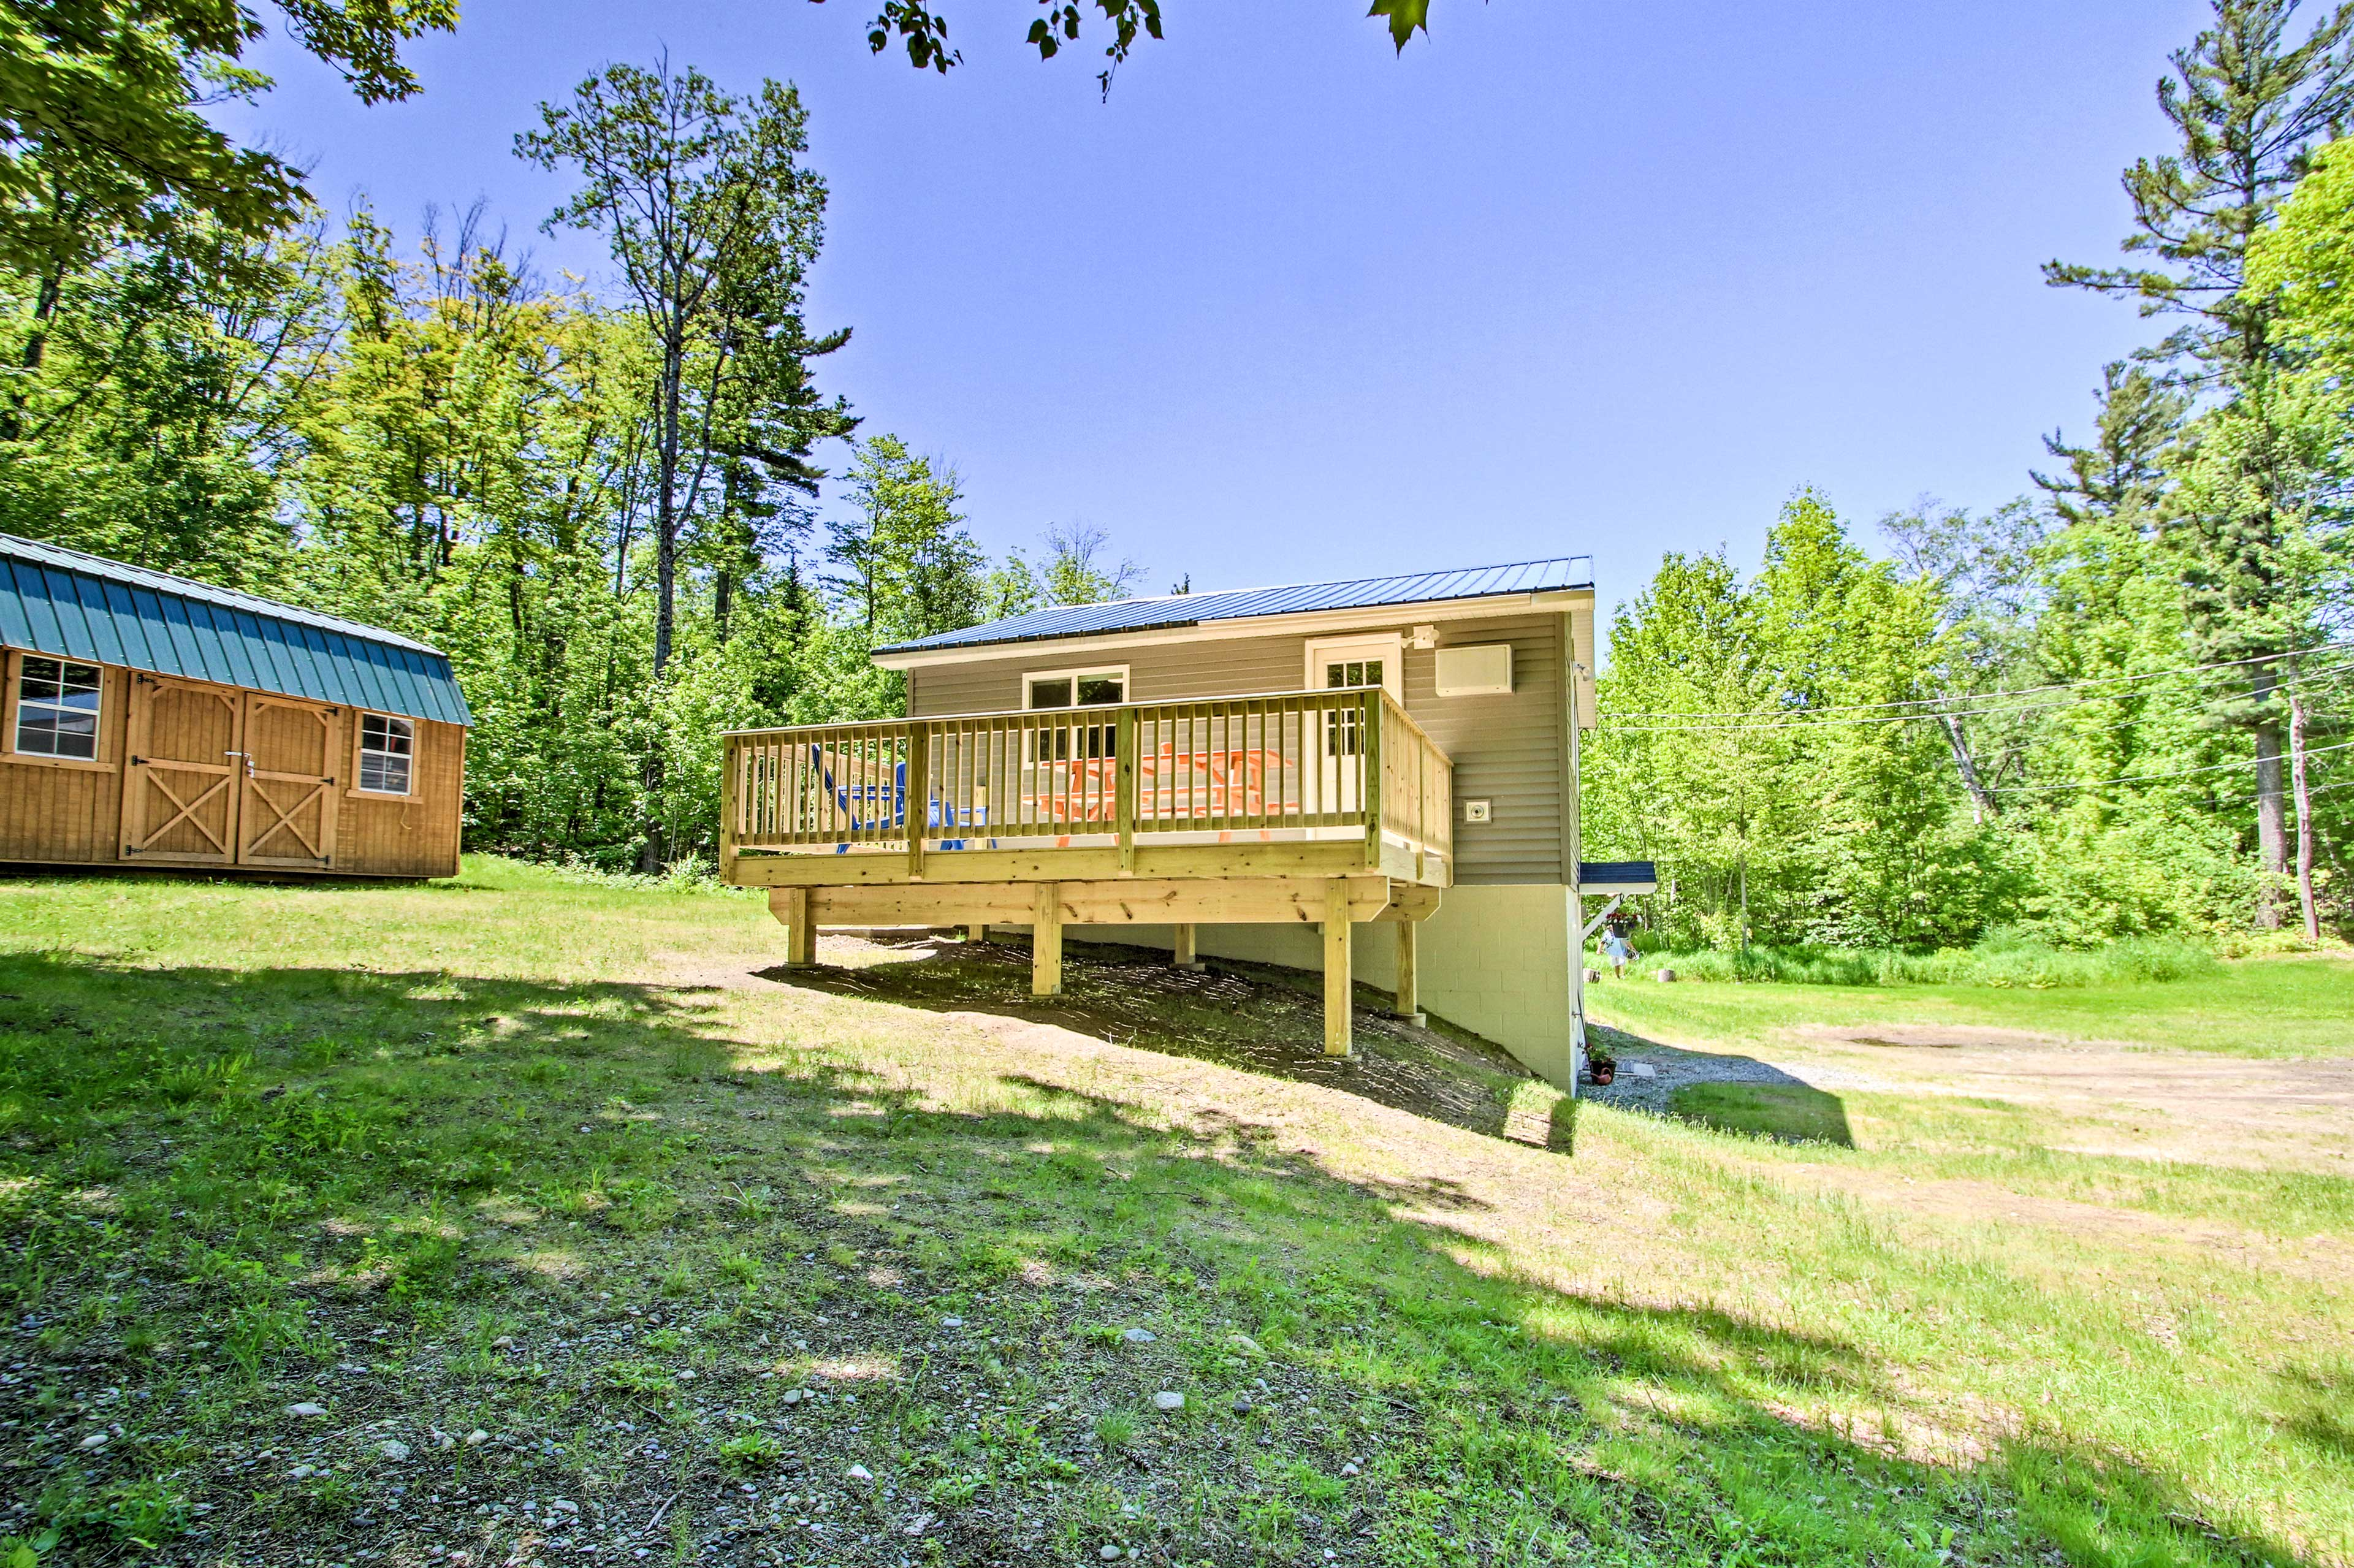 The vacation rental sits on an open clearing surrounded by trees.